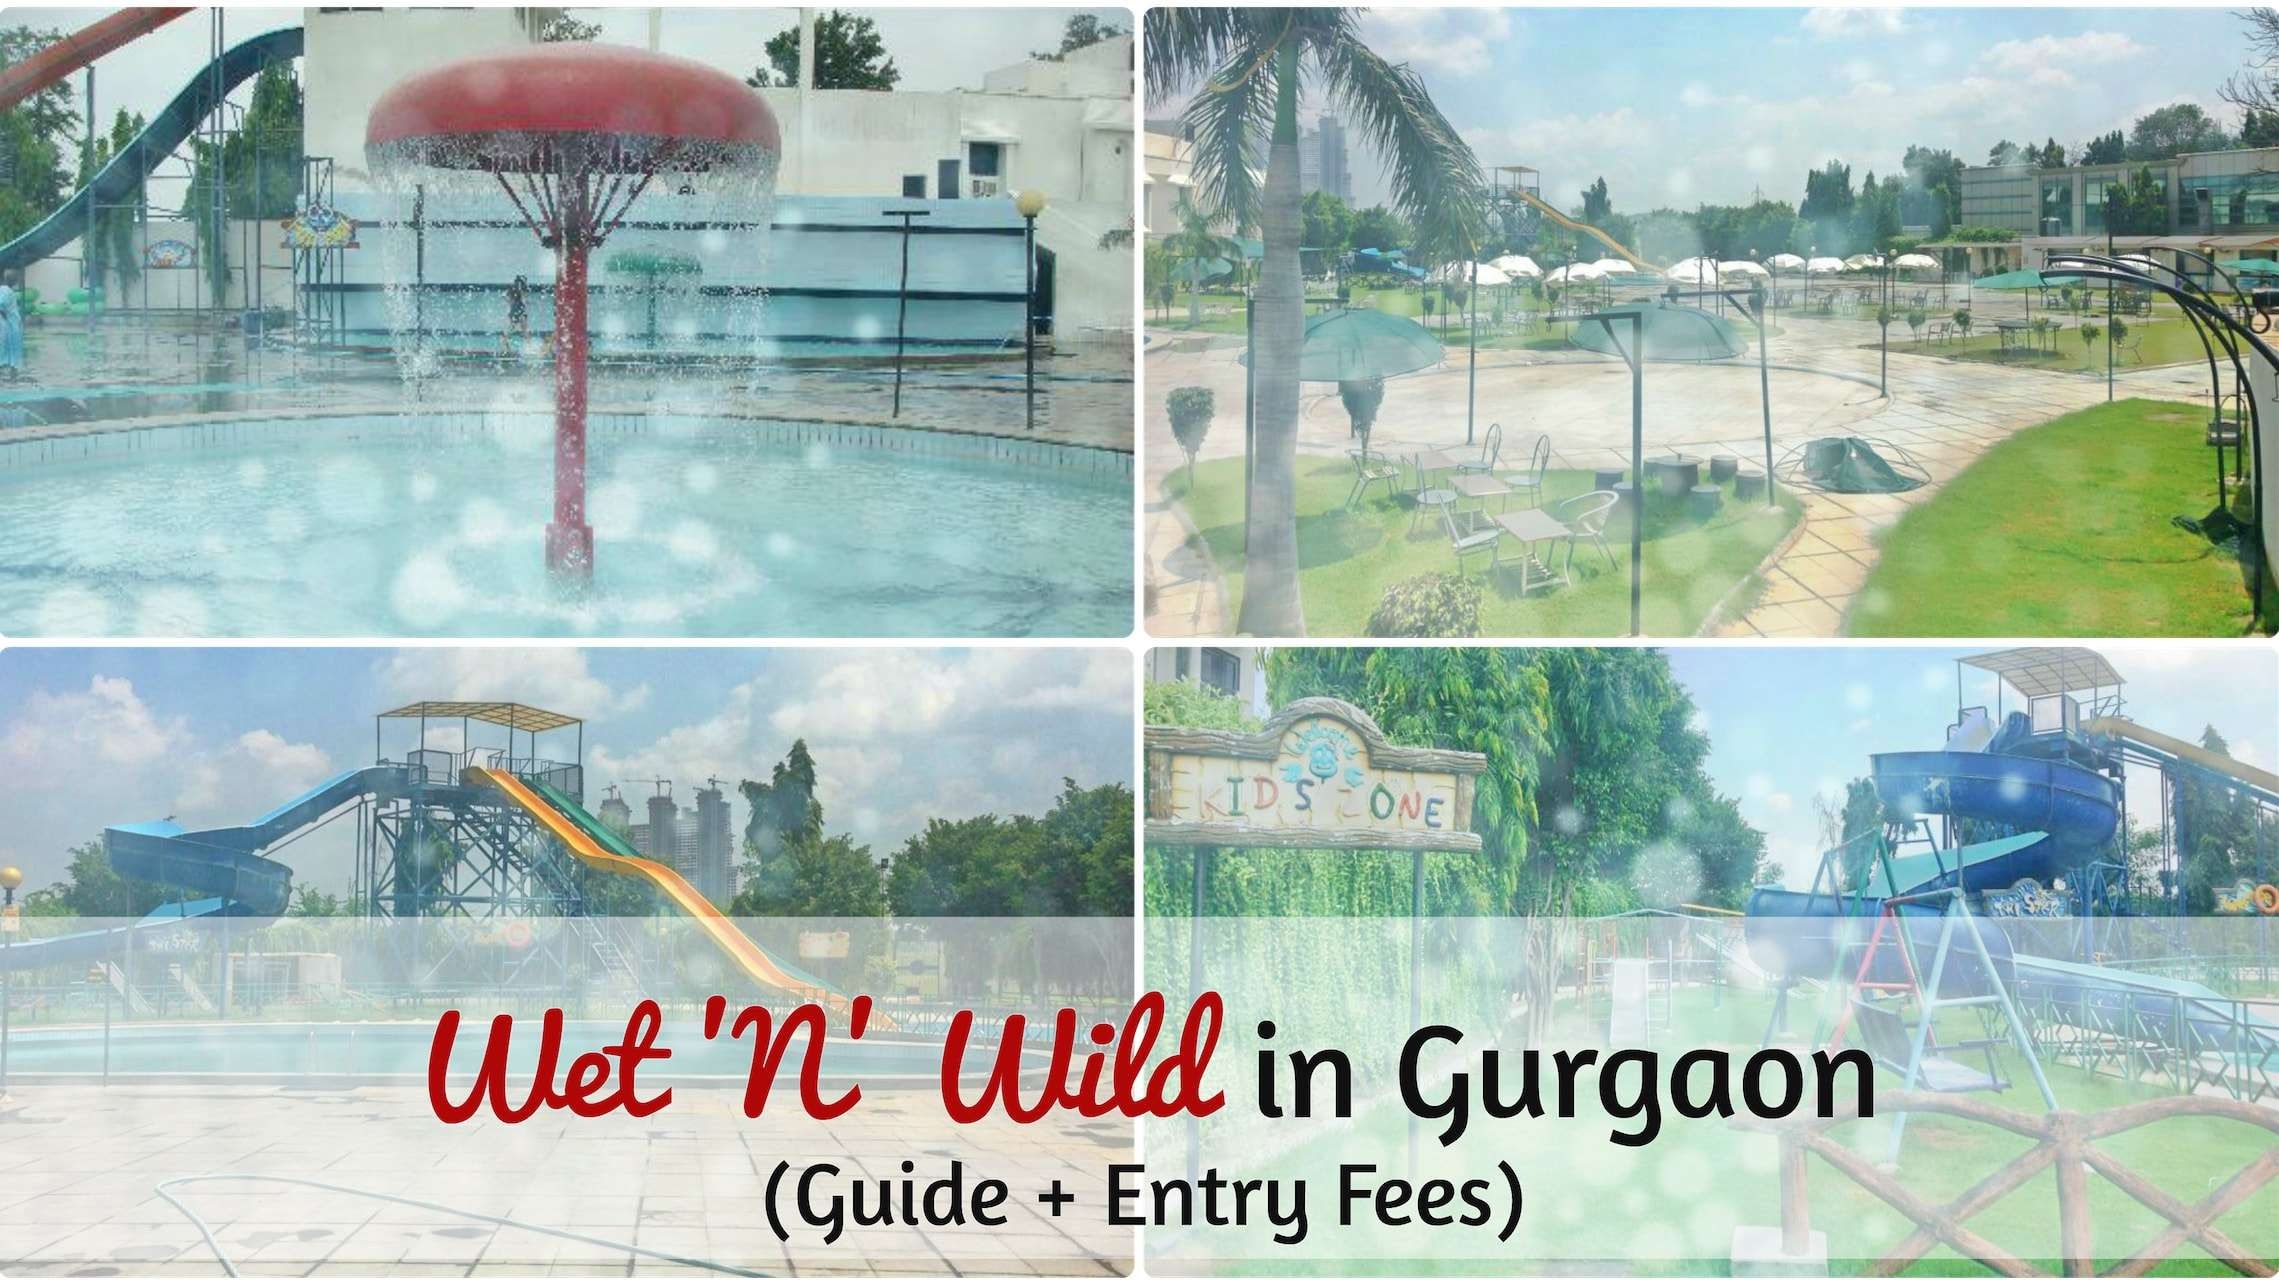 wet-n-wild-gurgaon.